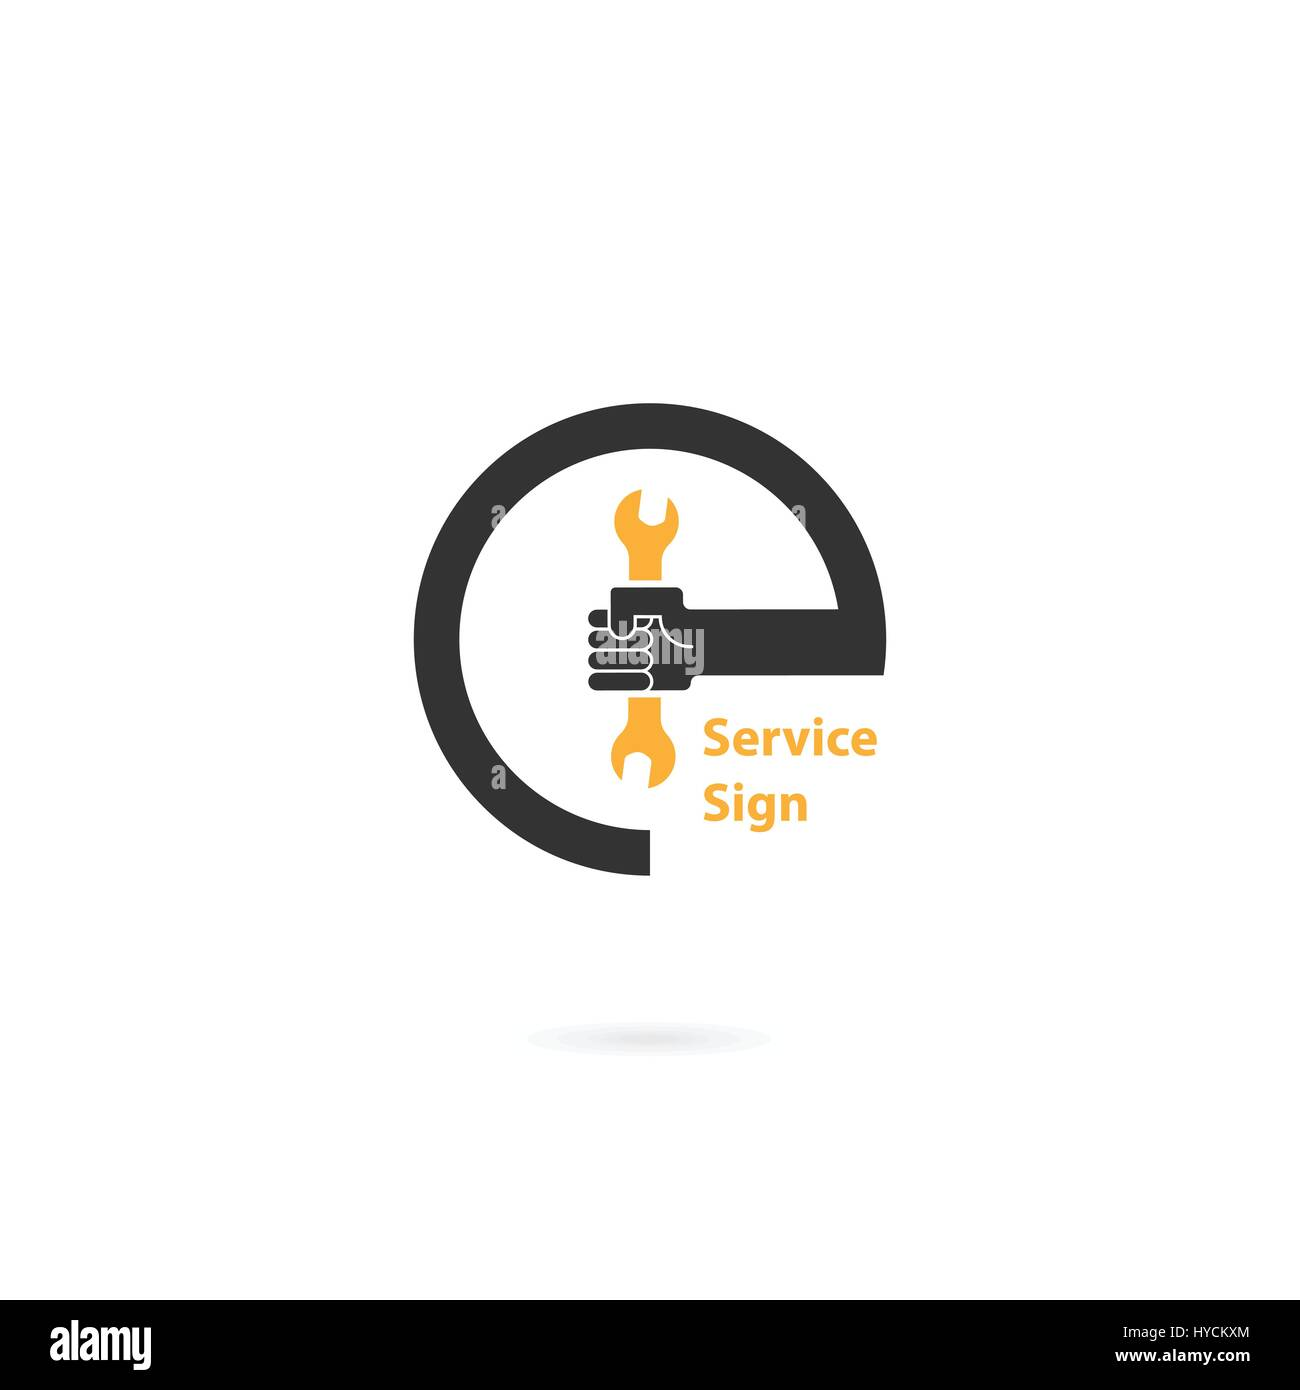 Human Hand Icon And Wrench Vector Logo Design Template